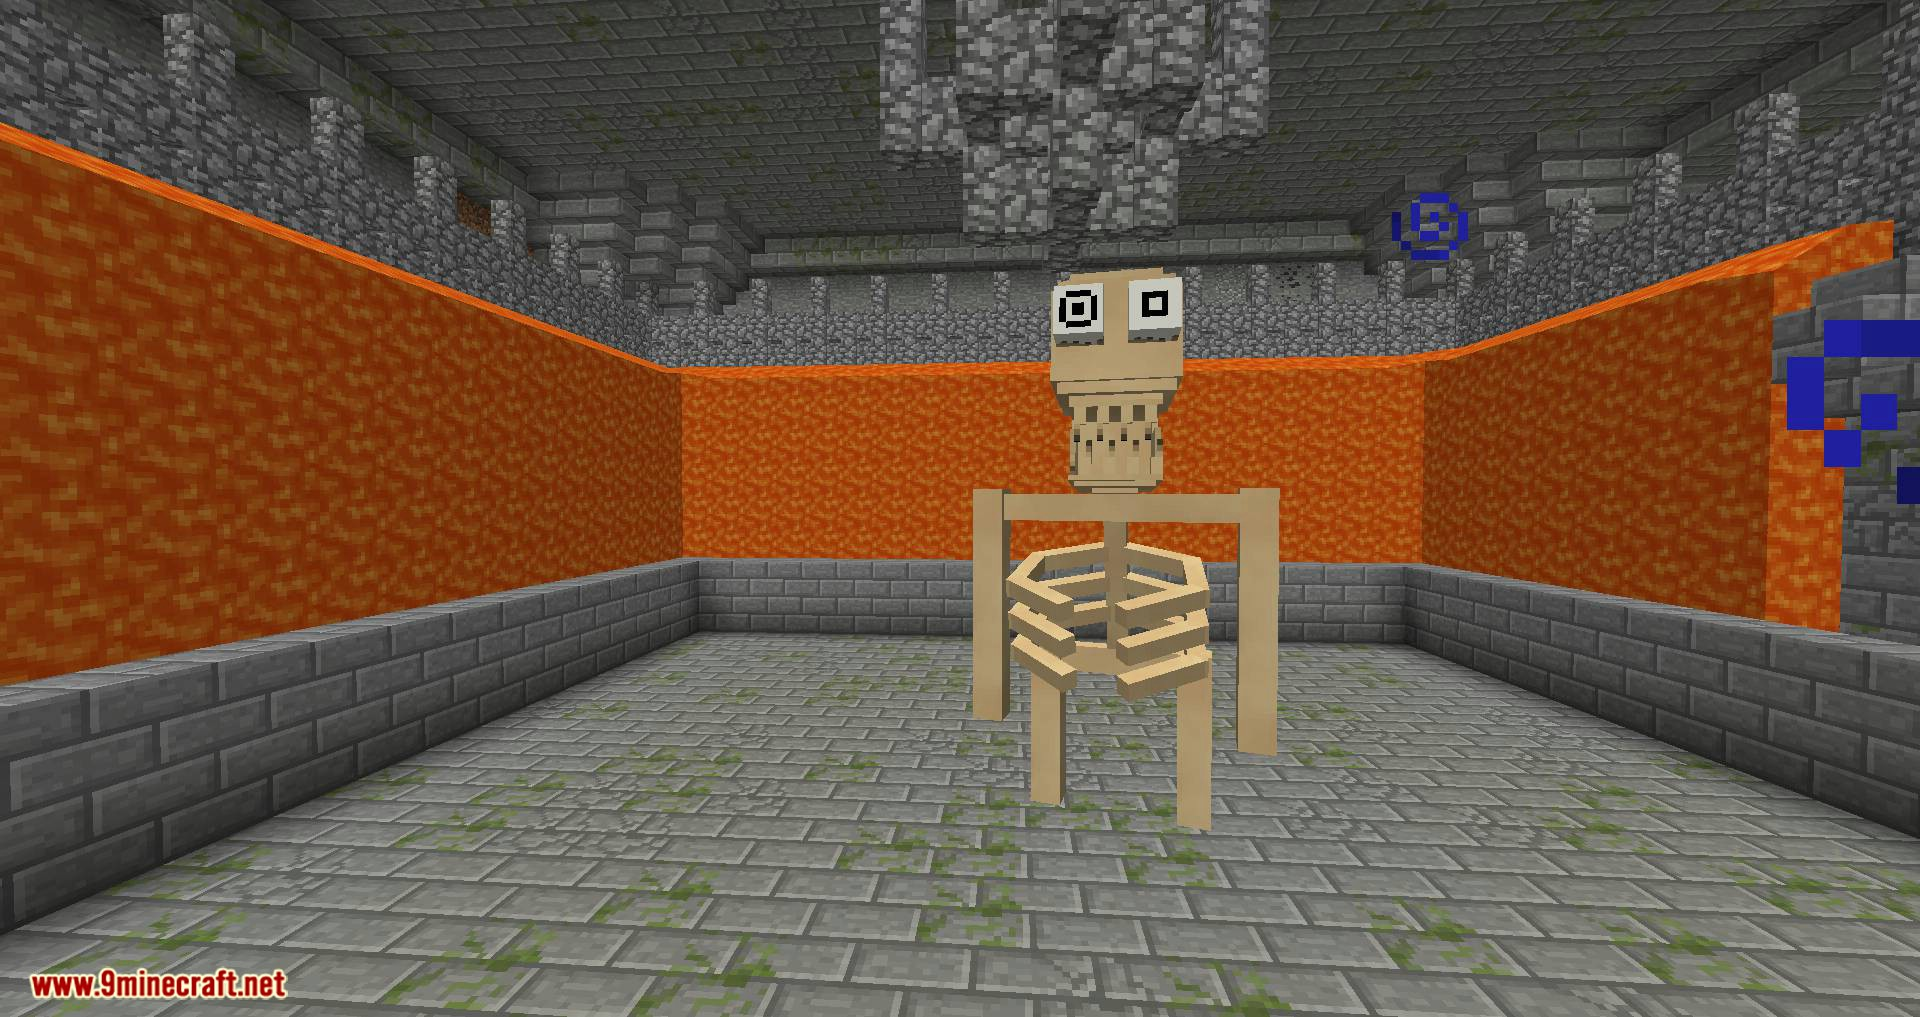 Wesley_s Roguelike Dungeons mod for minecraft 11